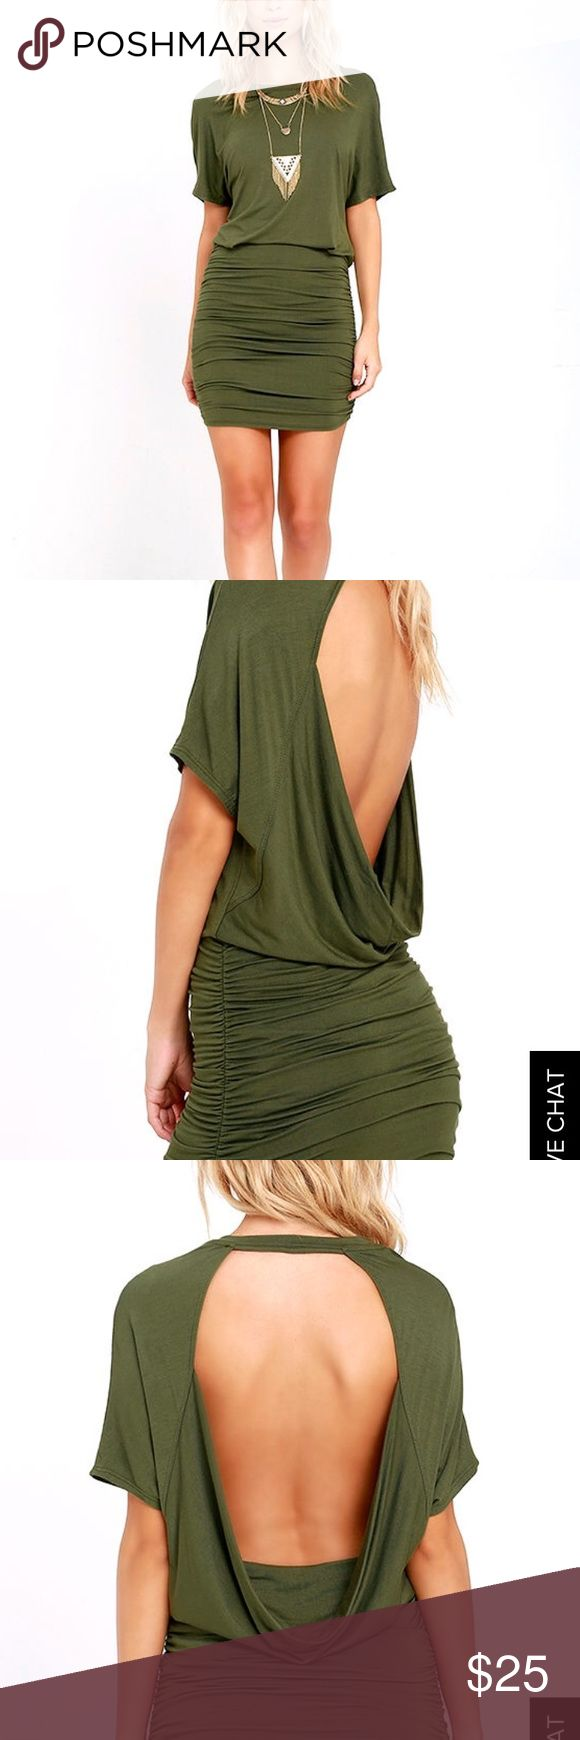 Green Olive Cocktail Going Out Party Dress Backless, new with tags, never worn Lulu's Dresses Mini